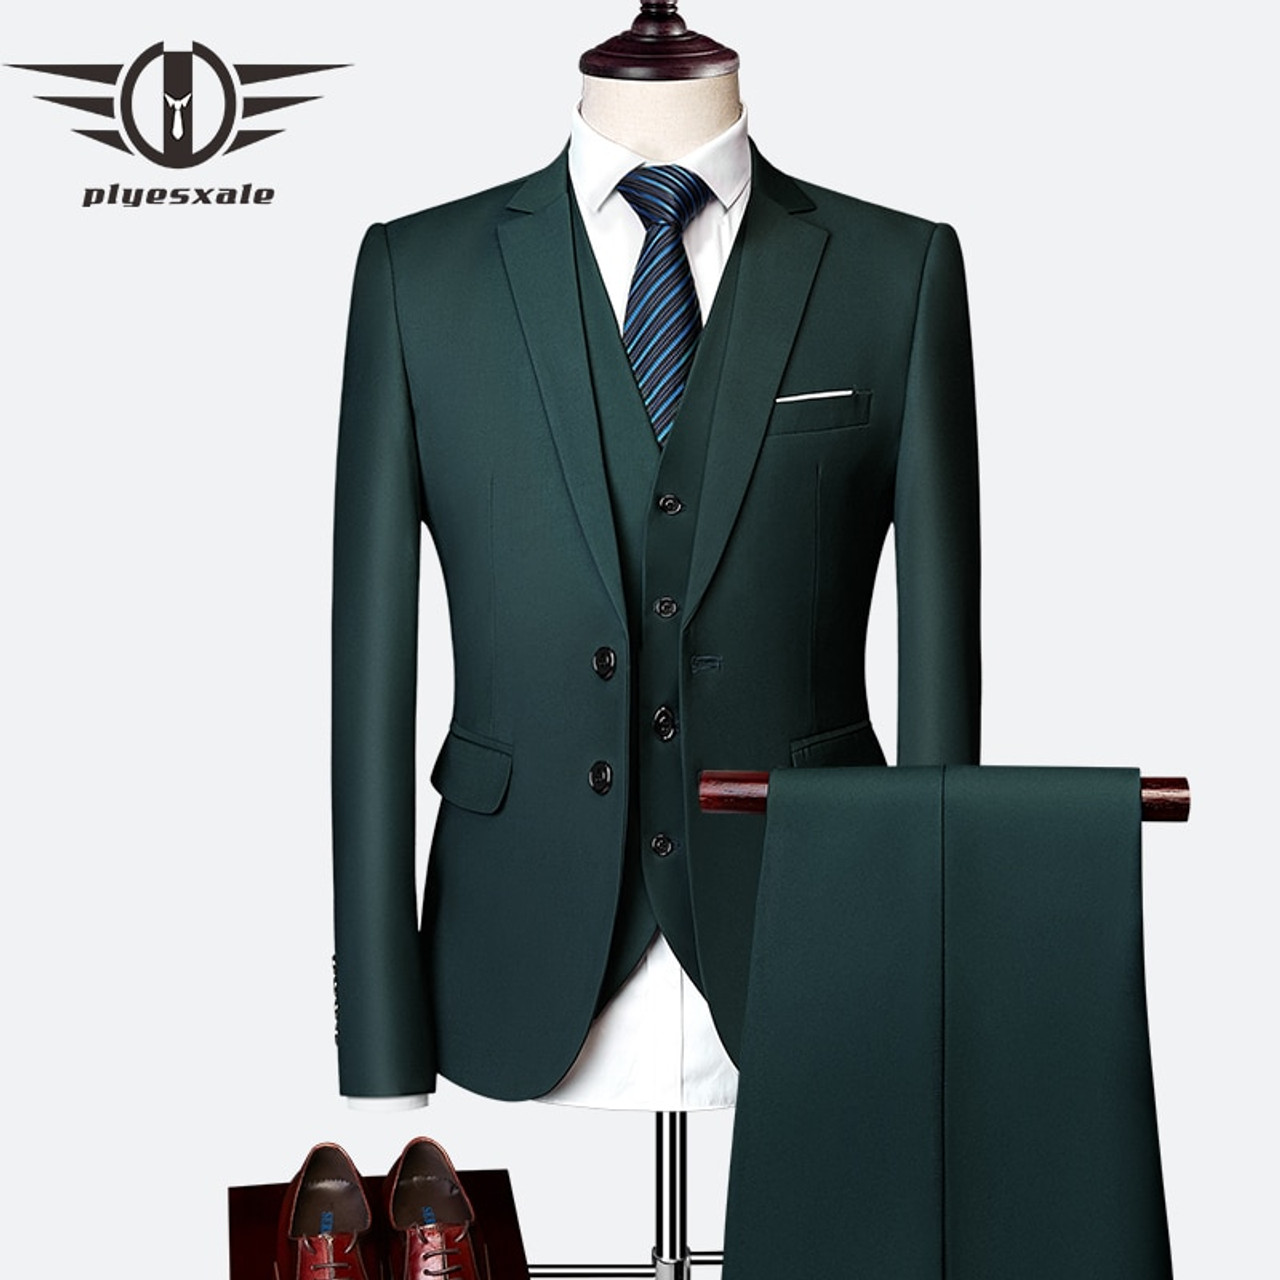 d23528041416 ... Plyesxale 3 Piece Wedding Suits For Men Slim Fit Men's Suits Formal  Burgundy Green Purple Yellow ...